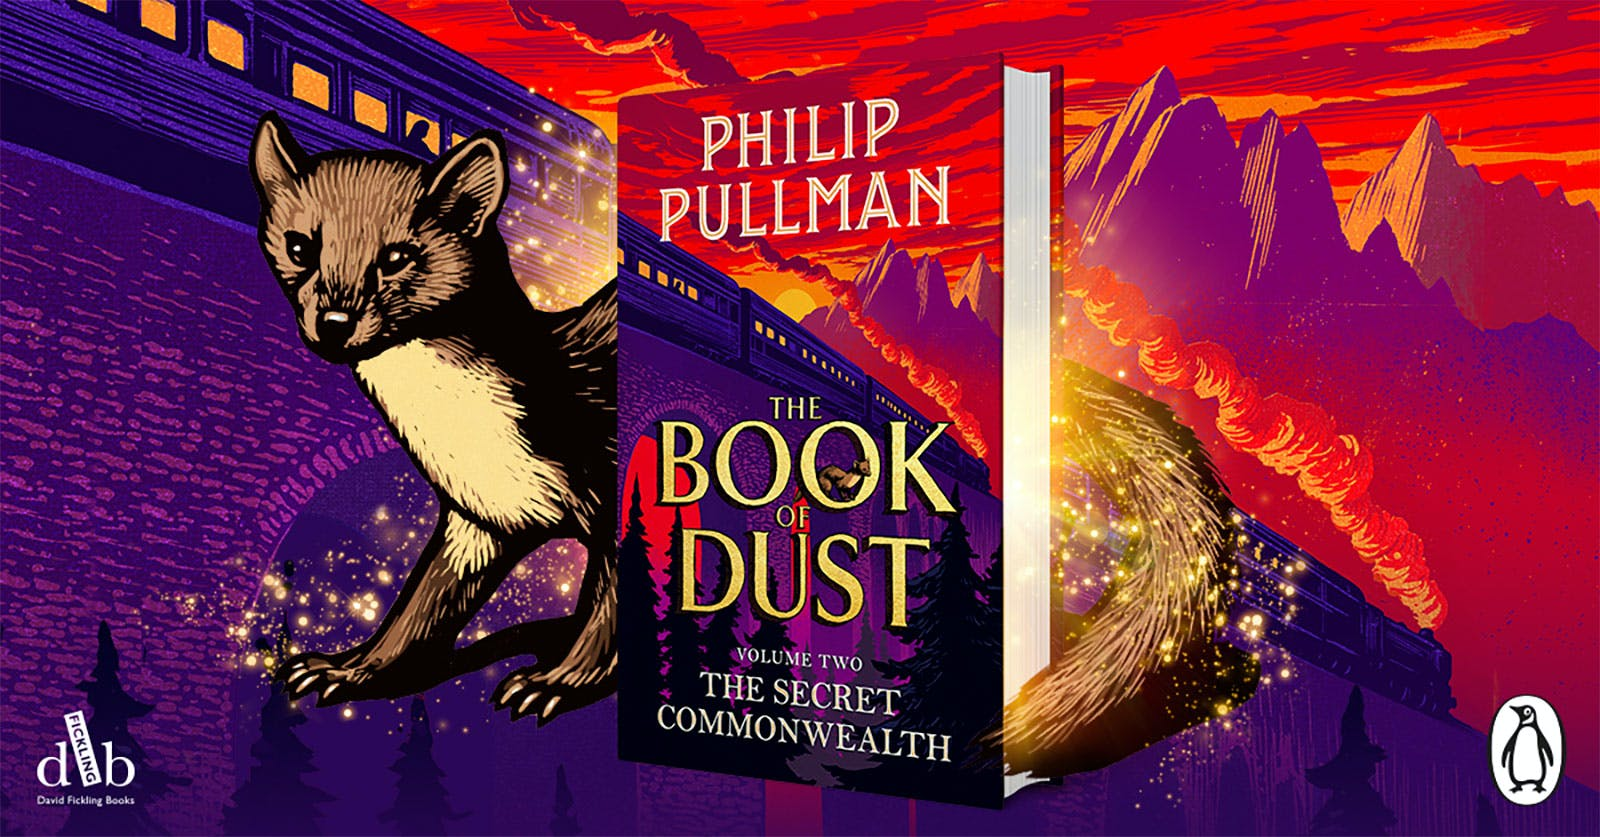 Cover and publication details for Philip Pullman's The Secret Commonwealth revealed